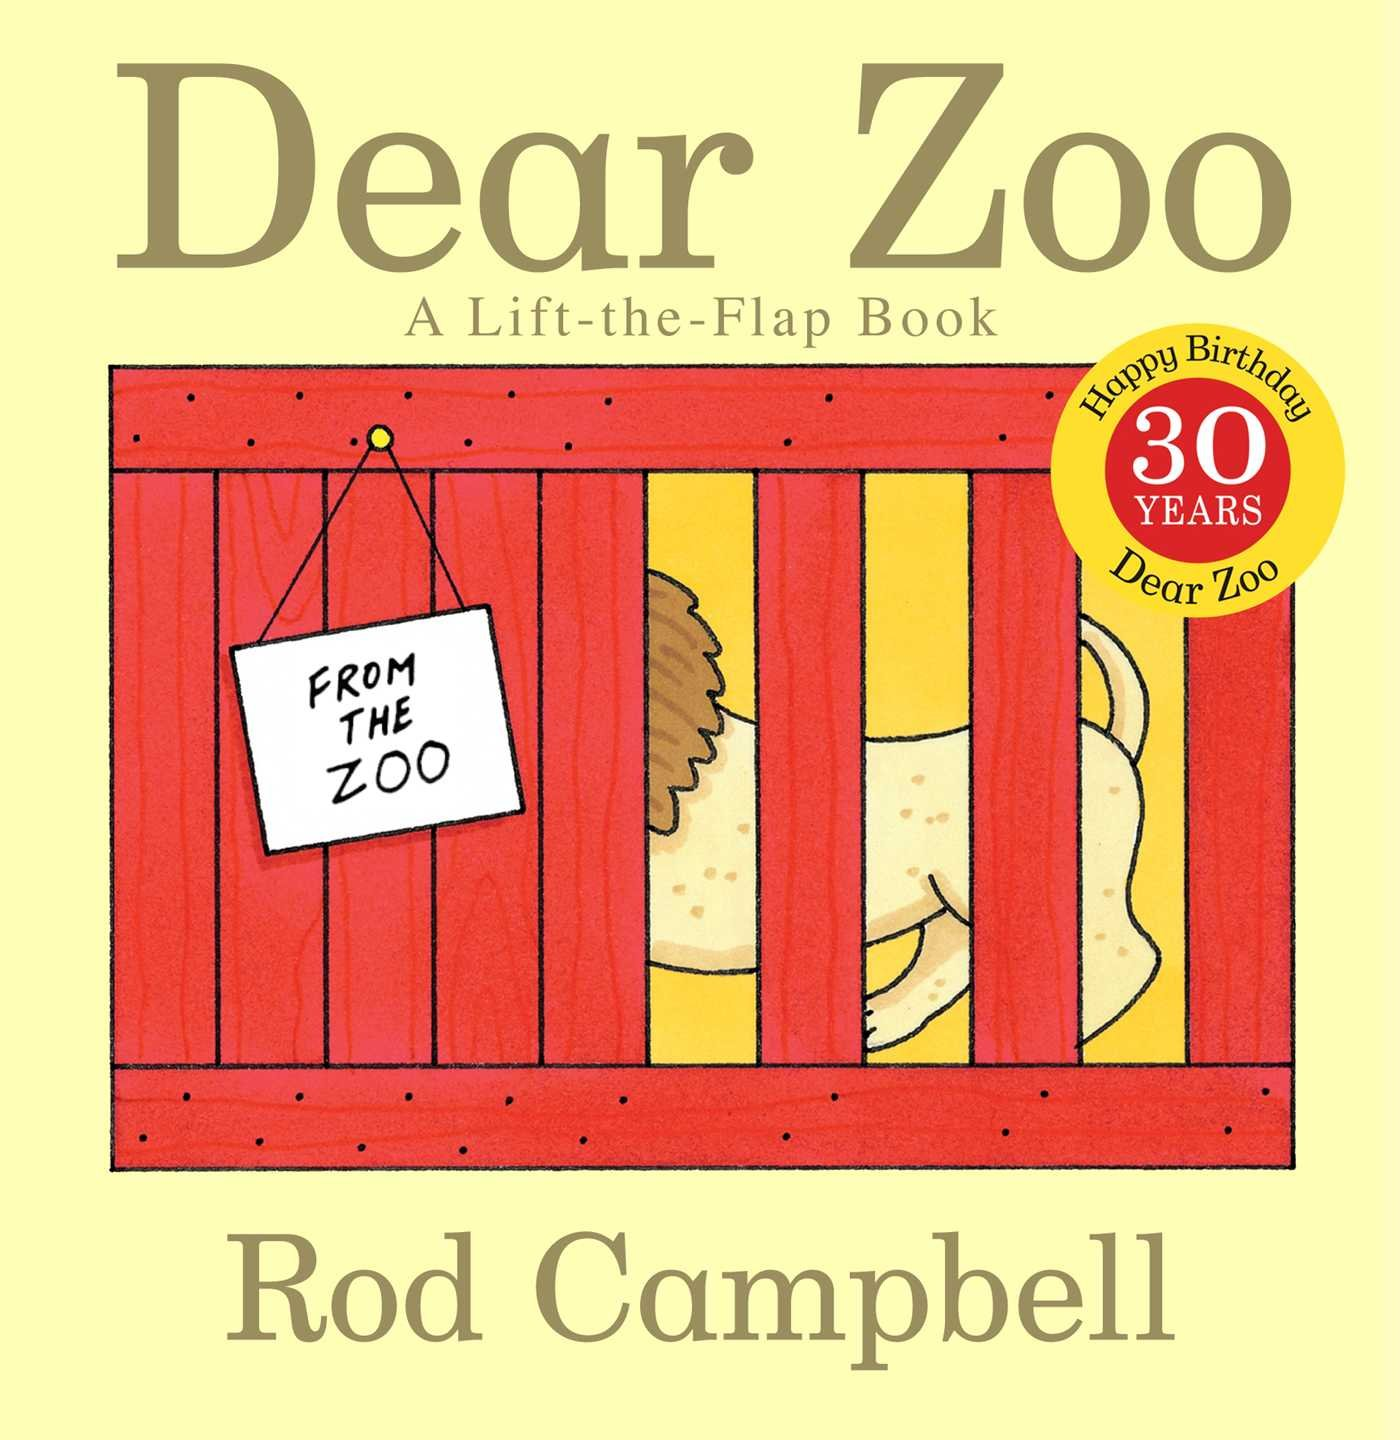 Dear Zoo Lift Flap Book product image